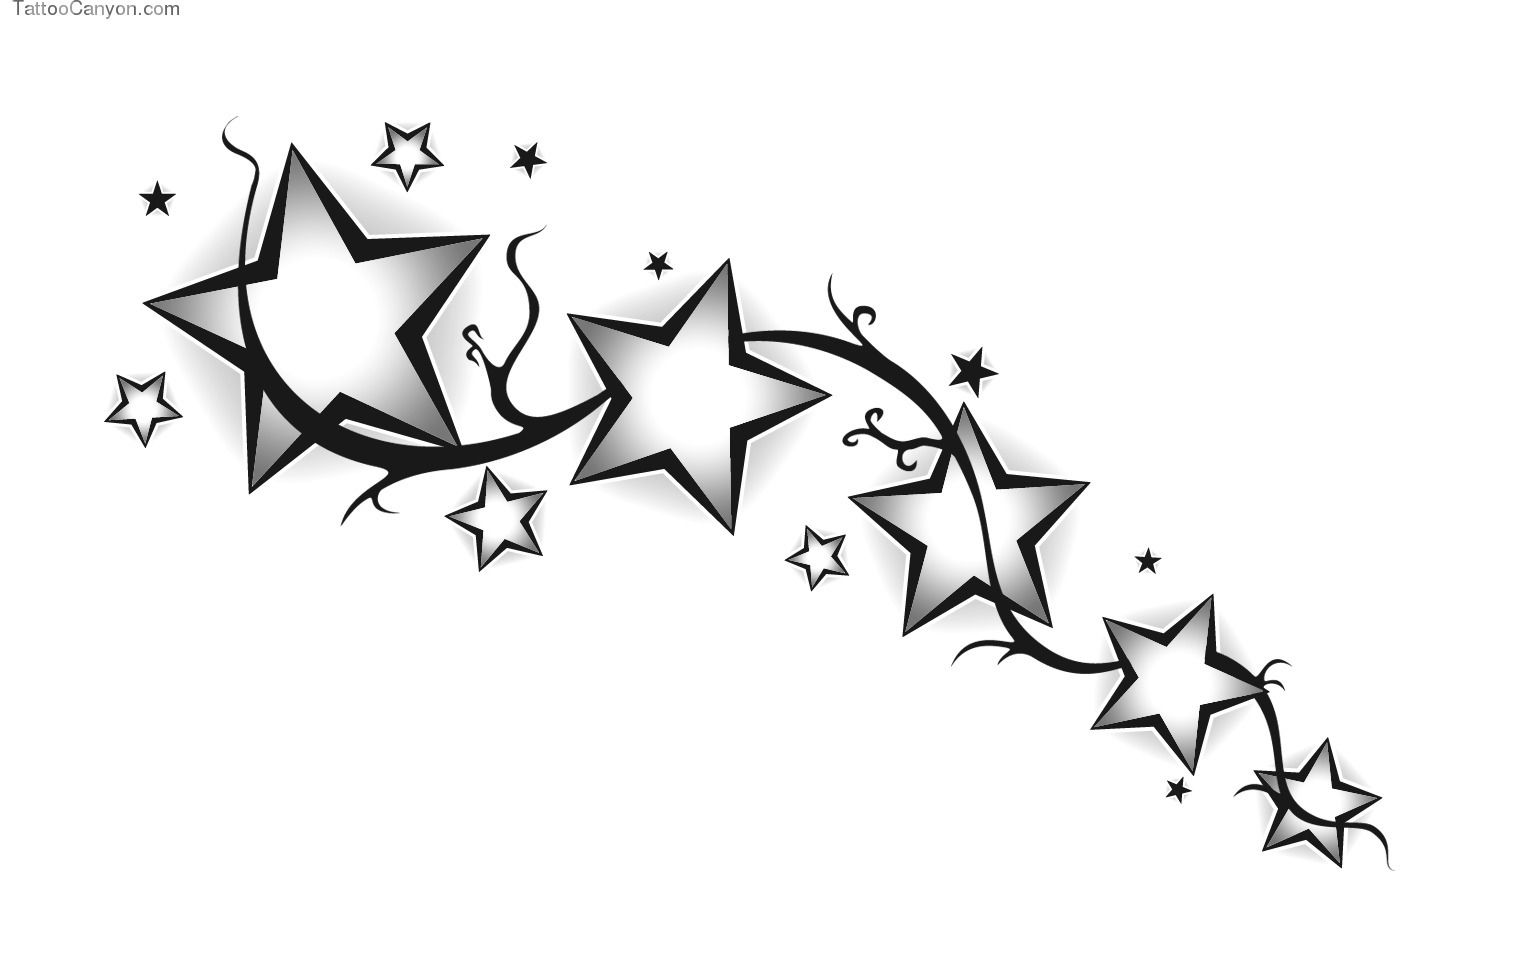 Stars Tattoos Png Download Number 19380 Daily Updated Free Icons And Png Images For Your Projects All Images Use Star Tattoo Designs Star Tattoos Tattoos